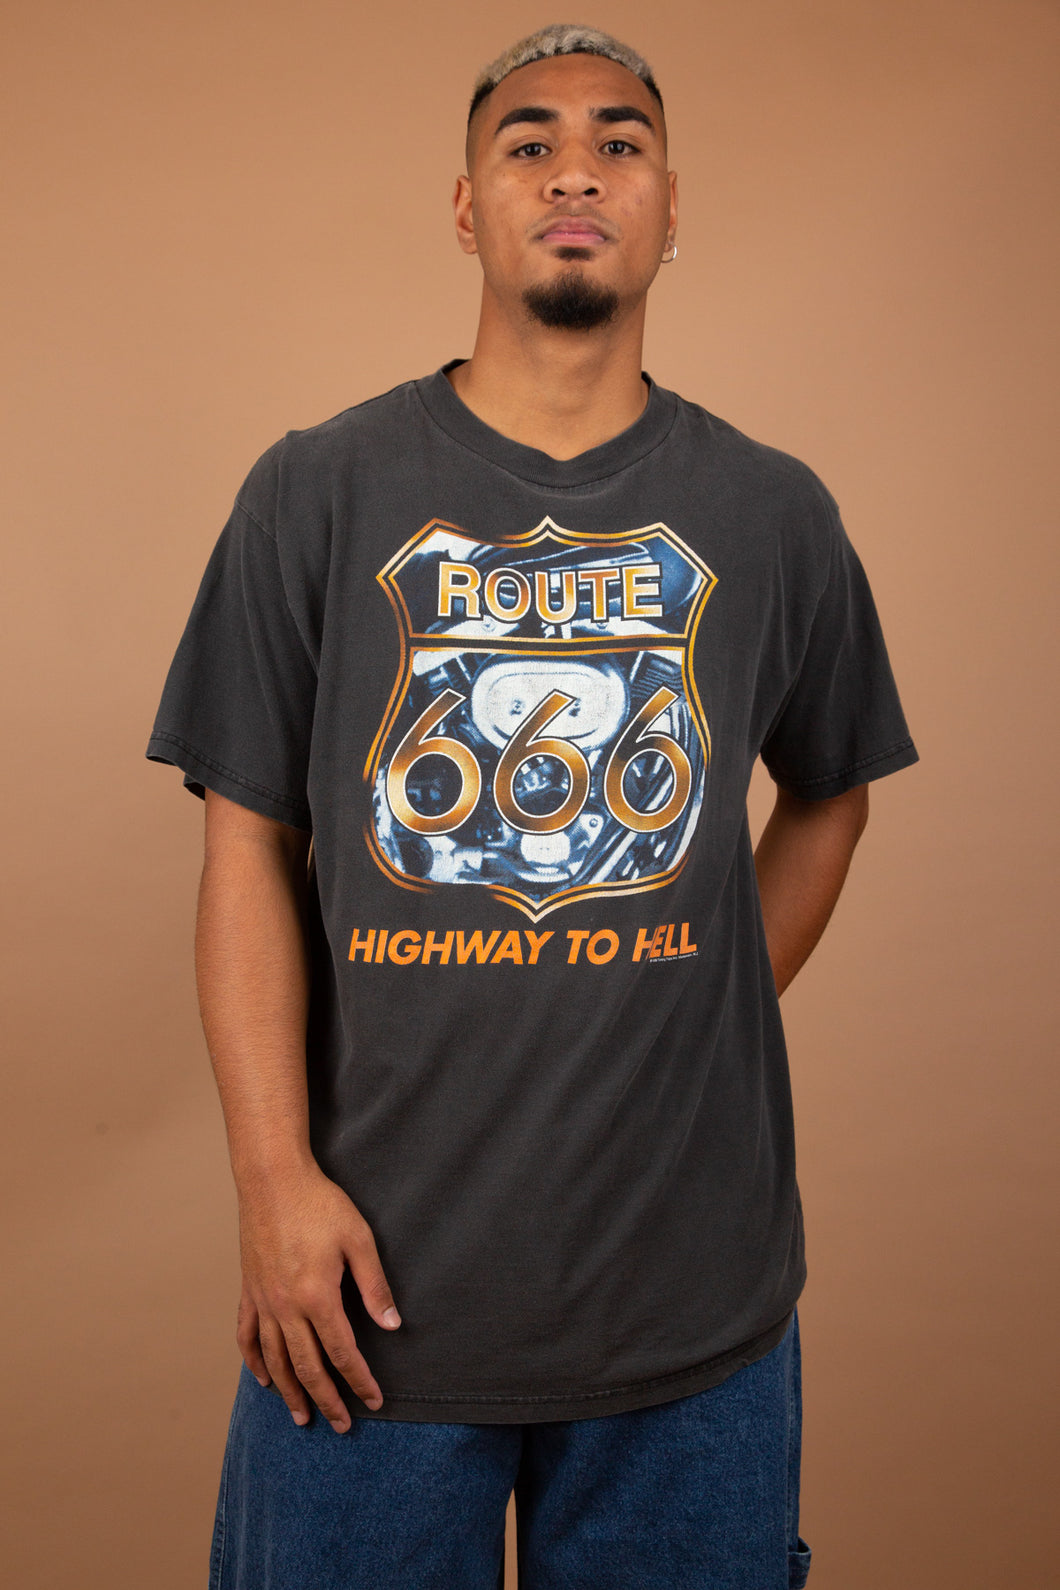 Faded black tee with Route 666, highway to hell graphic on the front. vintage magichollow